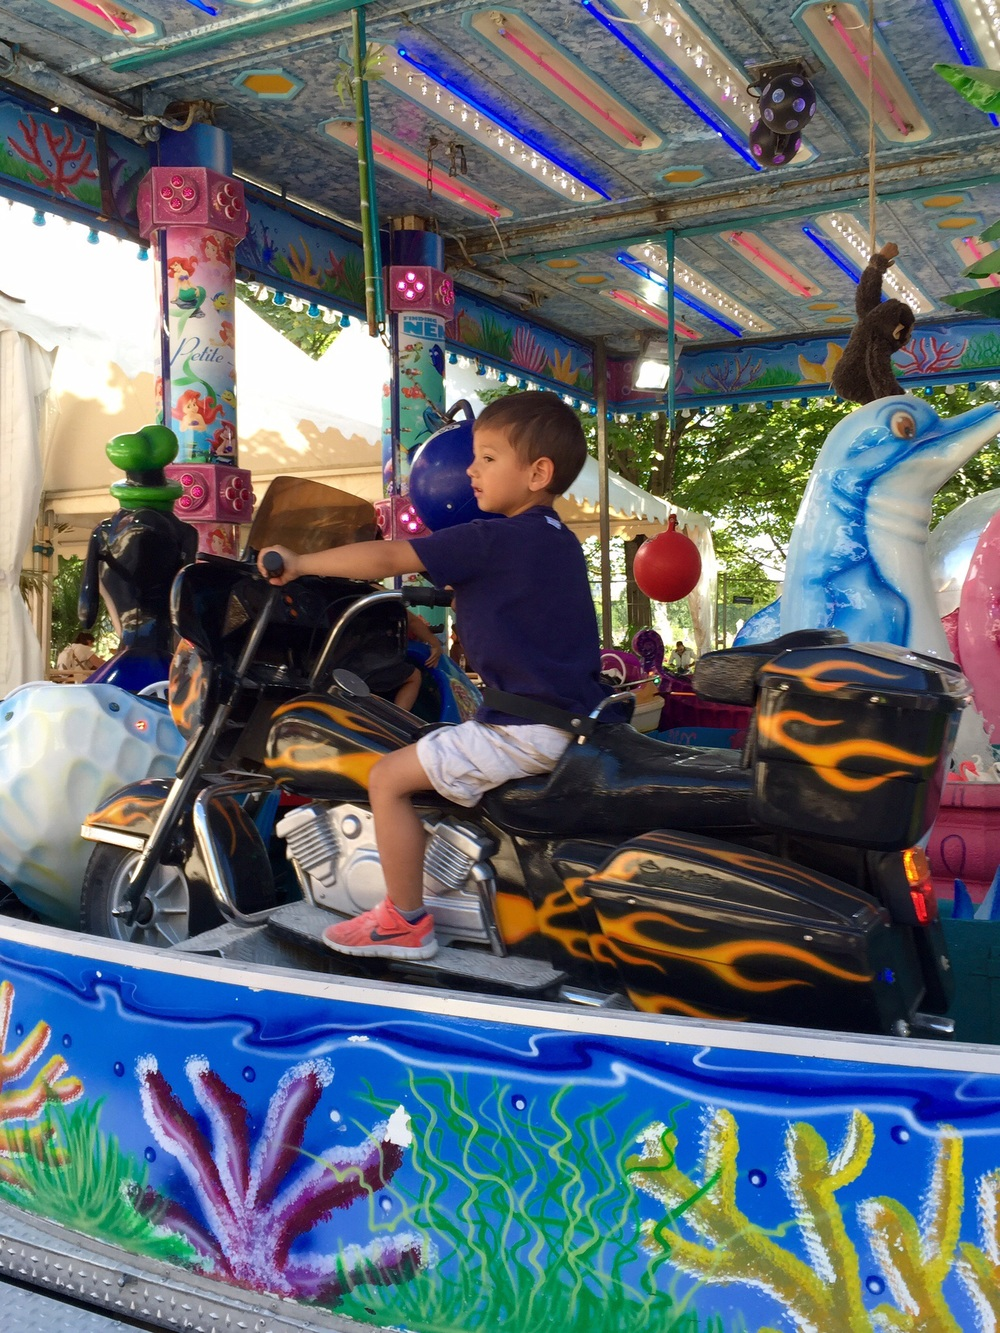 My son riding an American-style motorcycle at the carnival in the Jardin des Tuileries, Paris